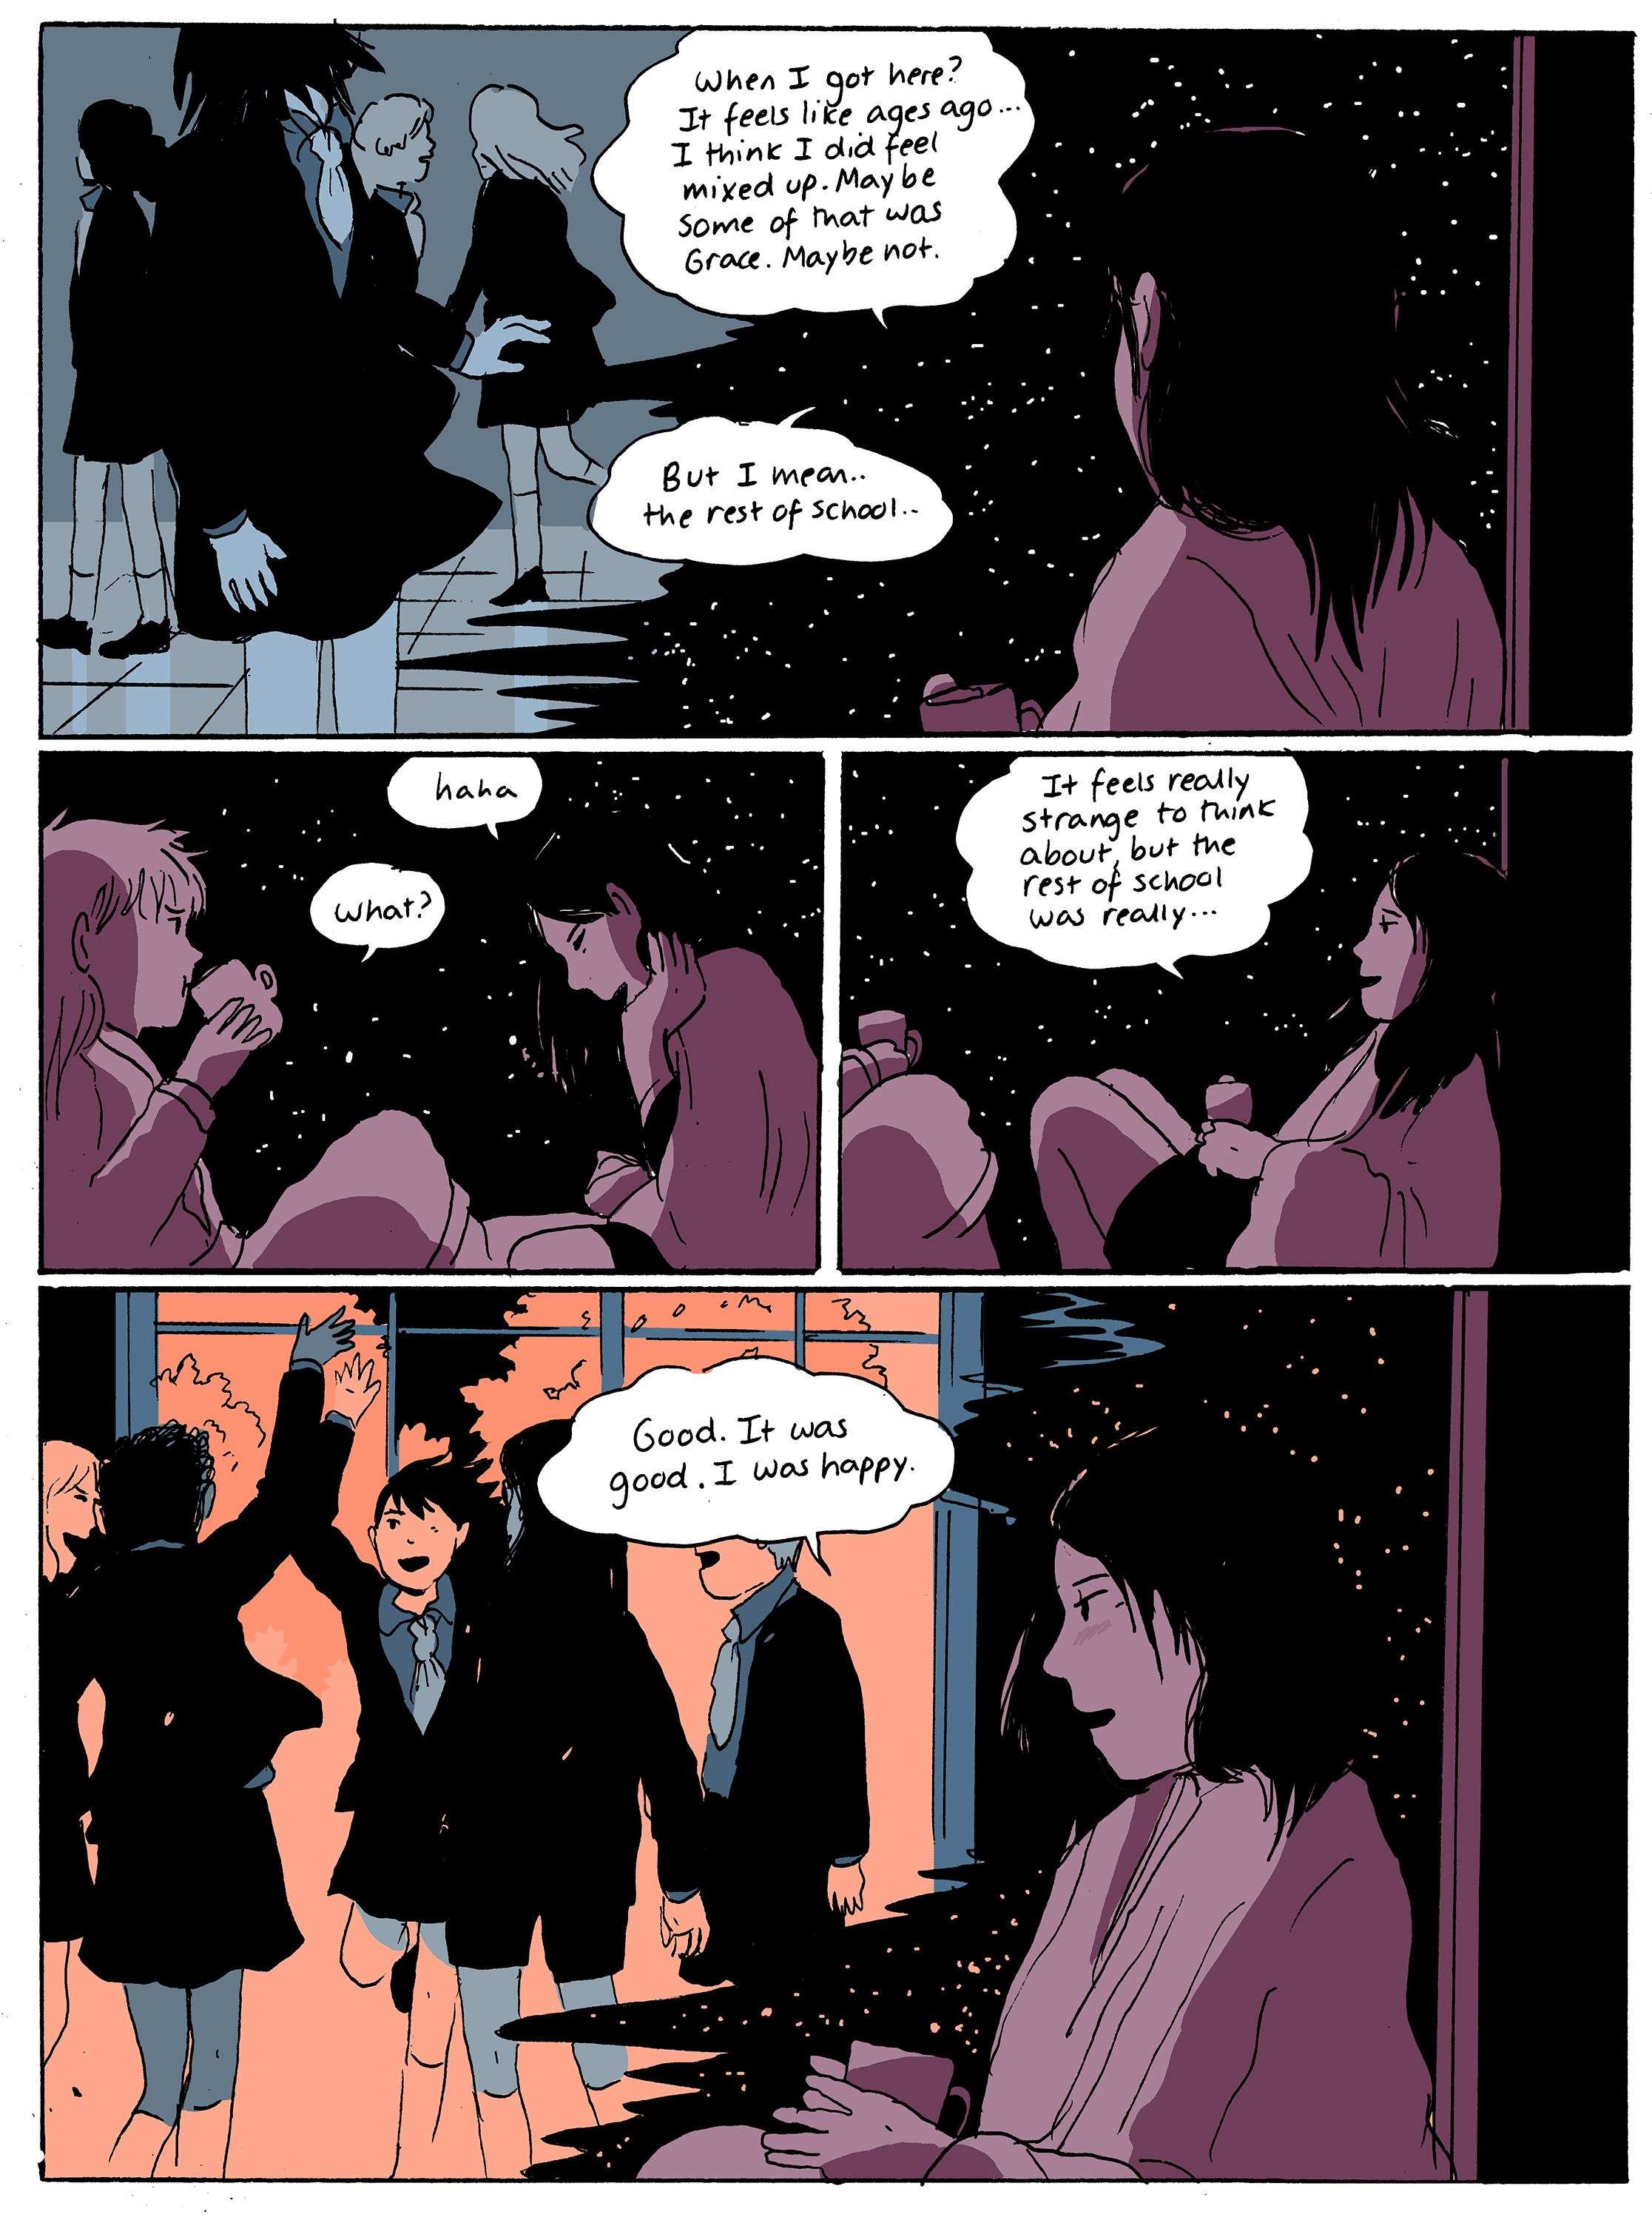 chapter13_page18.jpg